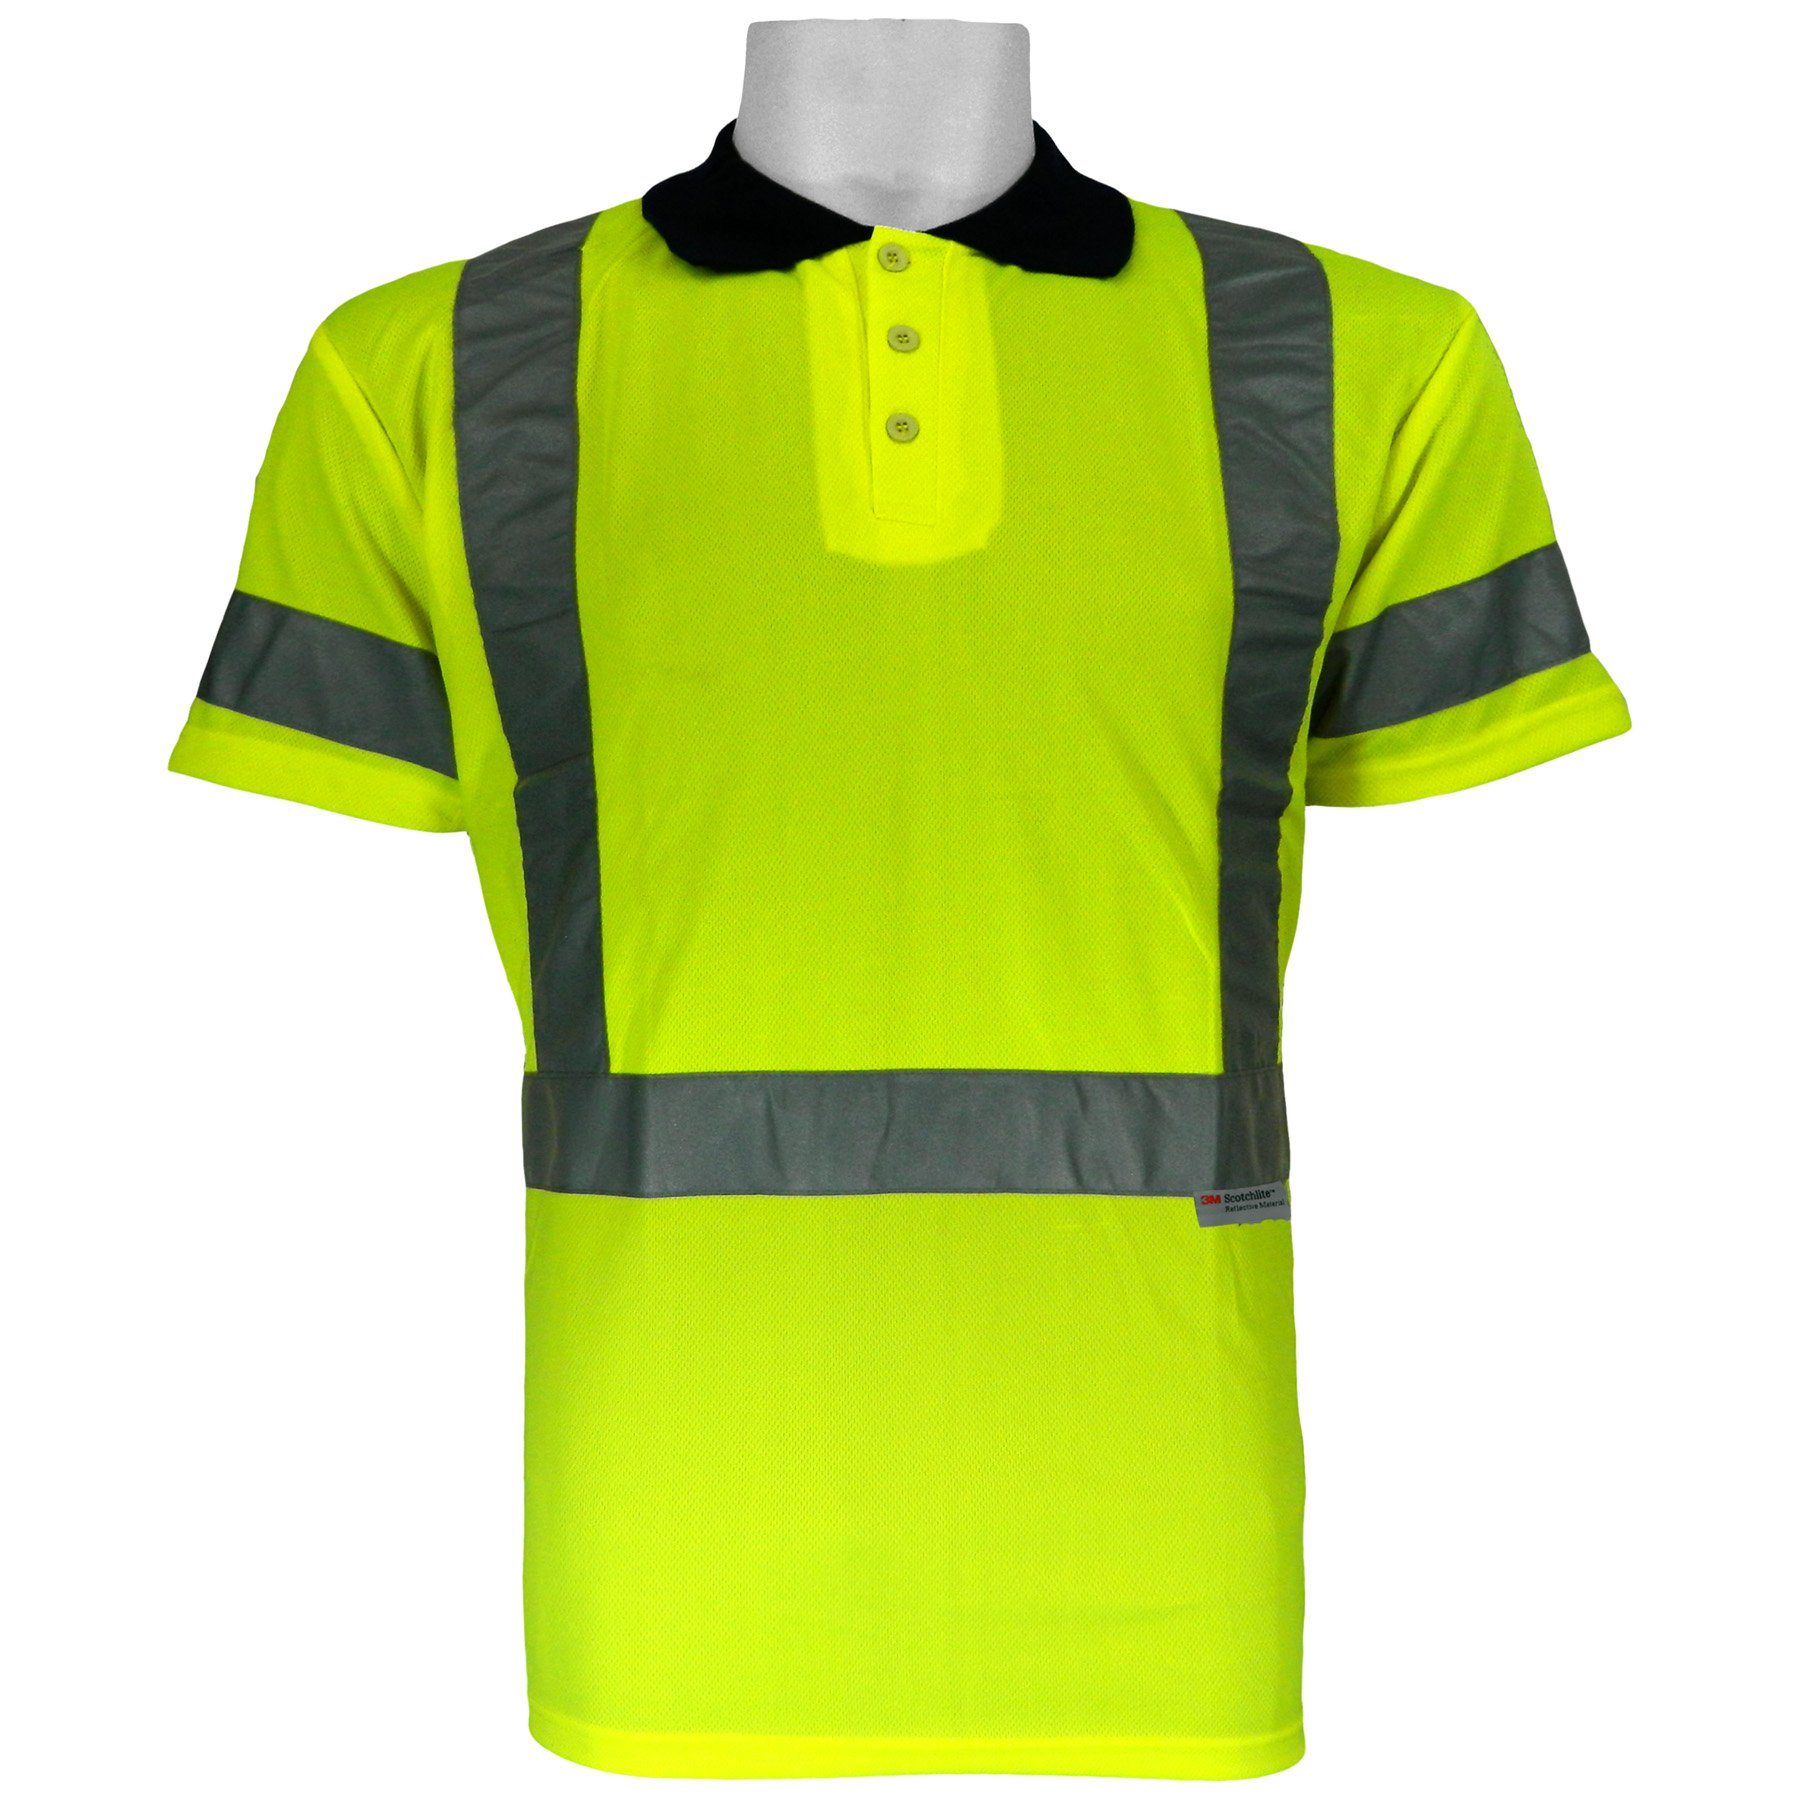 Global Glove GLO-009 FrogWear Class 3 Polo/Golf Style High Visibility Safety T-Shirt with 3M Scotchlite Reflective, Medium, Lime (Case of 100) by Global Glove (Image #1)